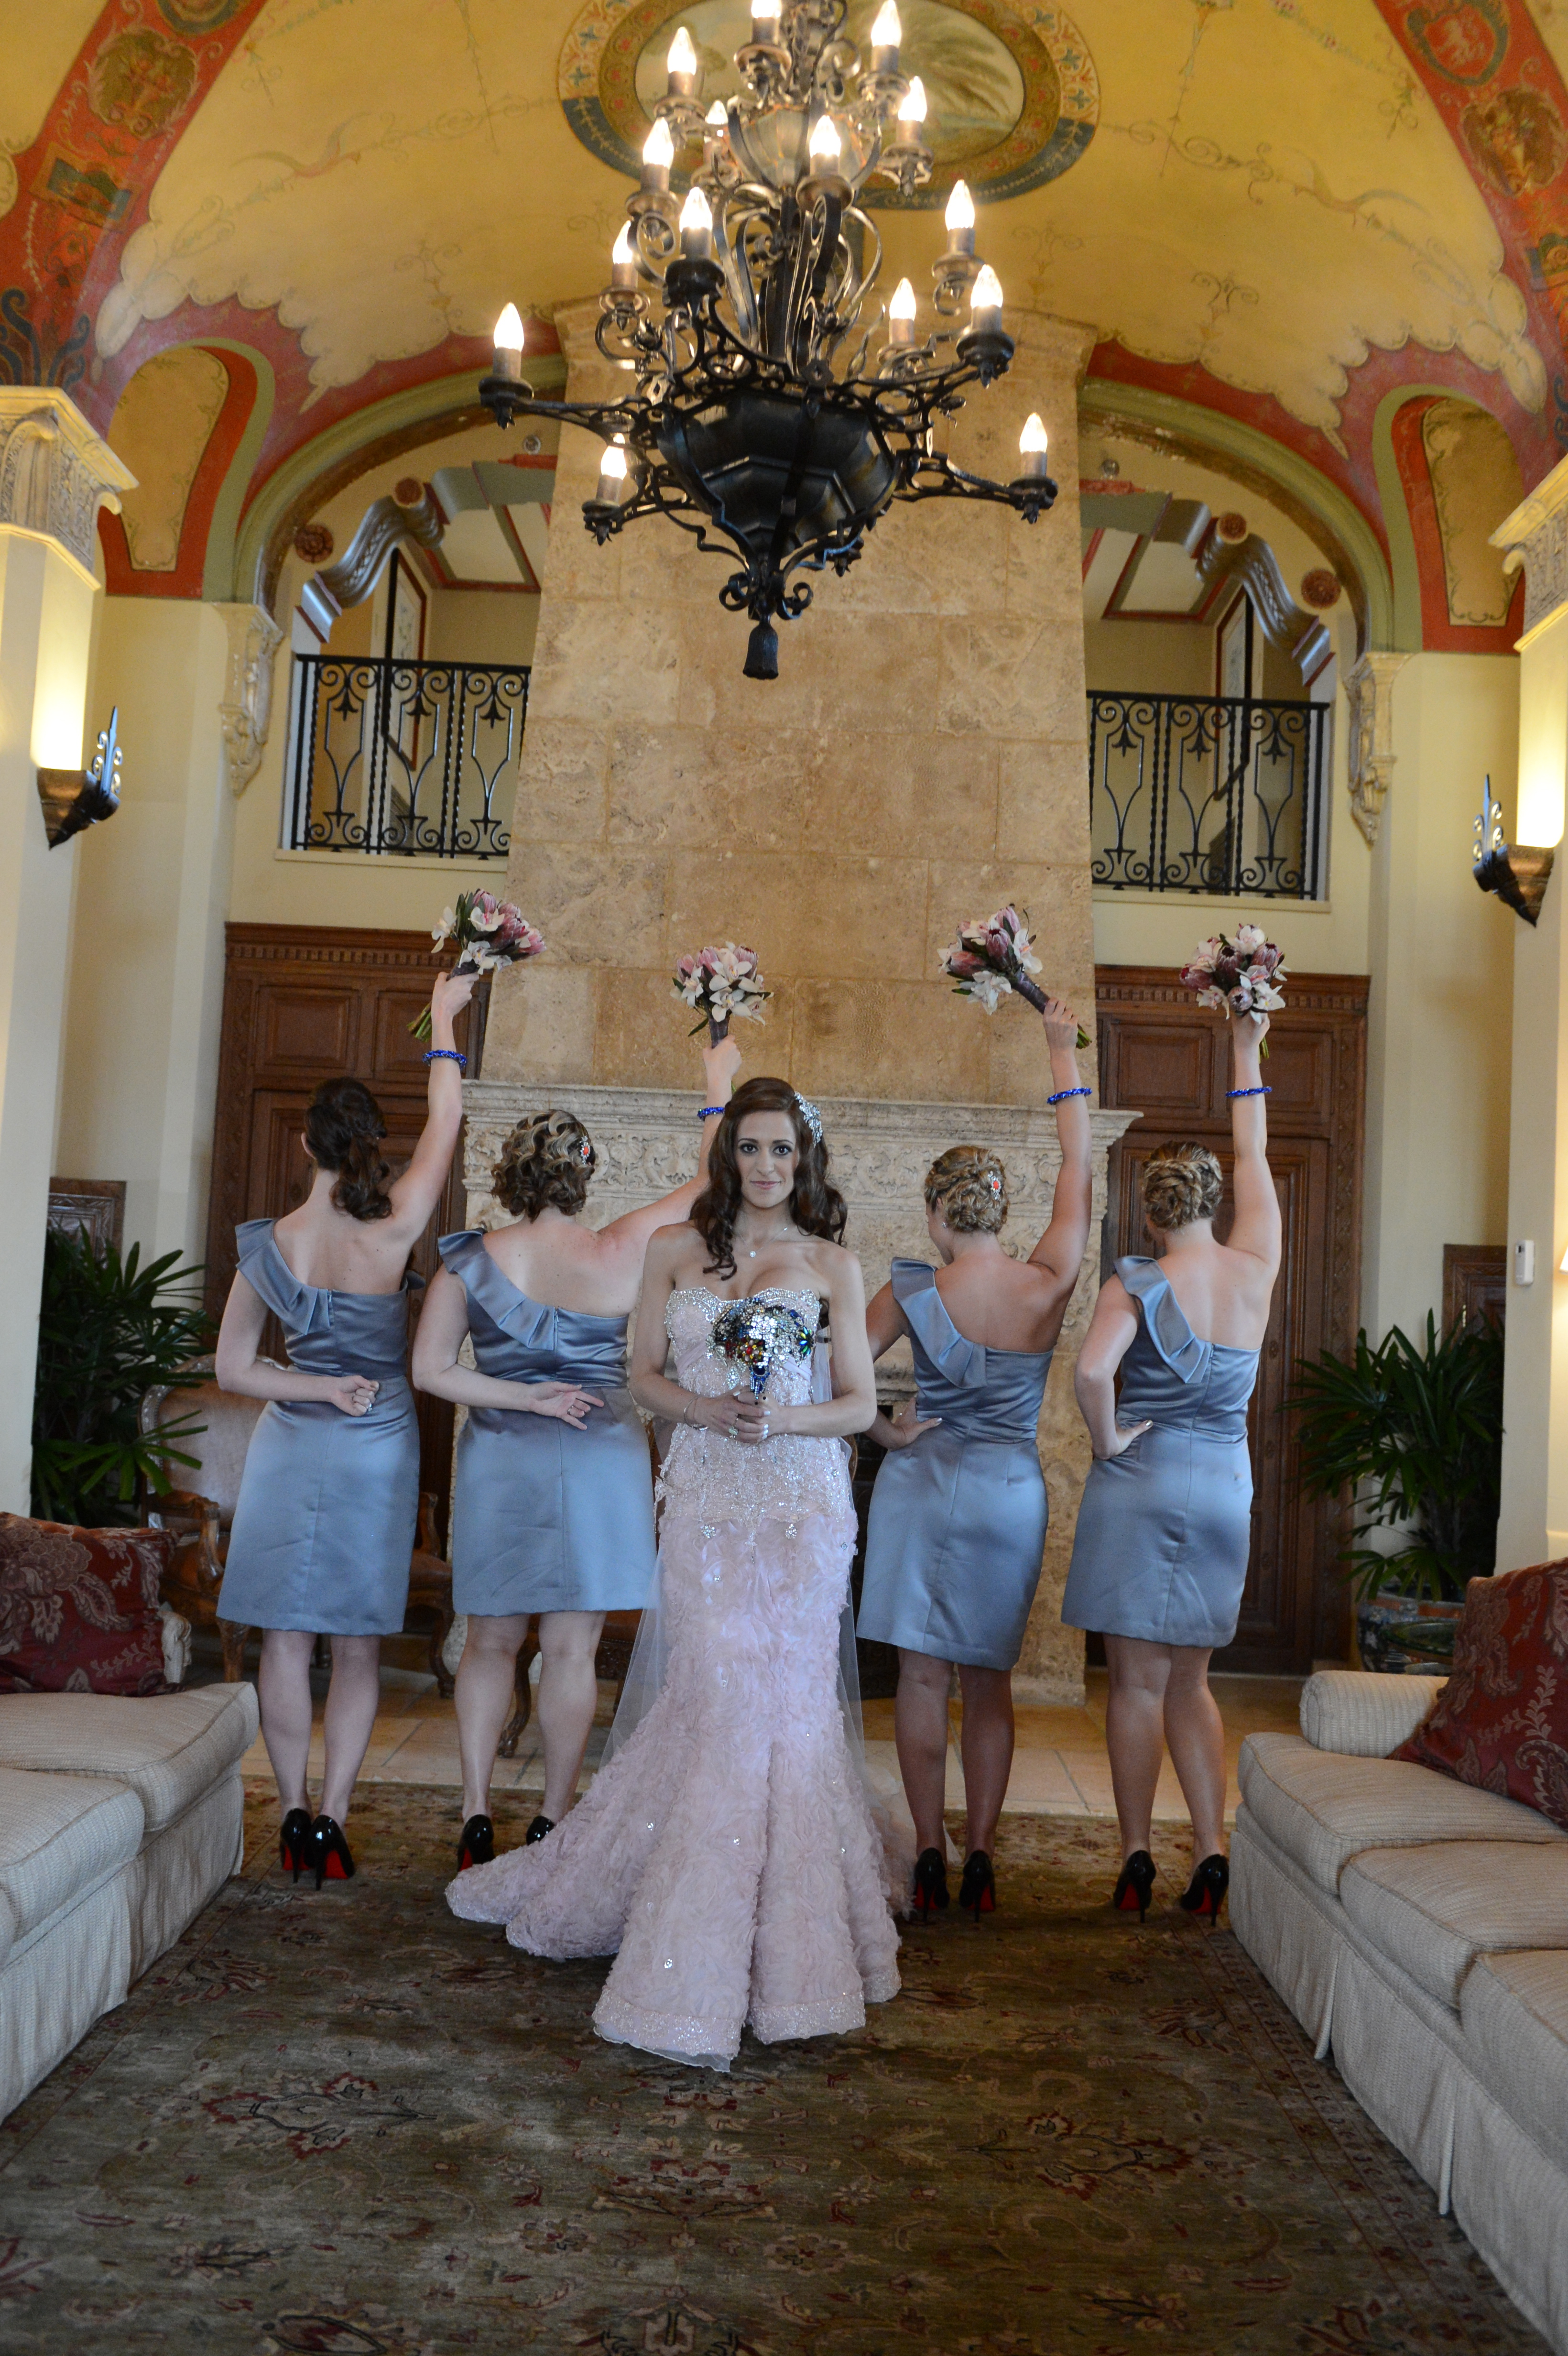 Bridesmaids, Real Weddings, Destination, Glamorous, Formal, Dramatic, grey dresses